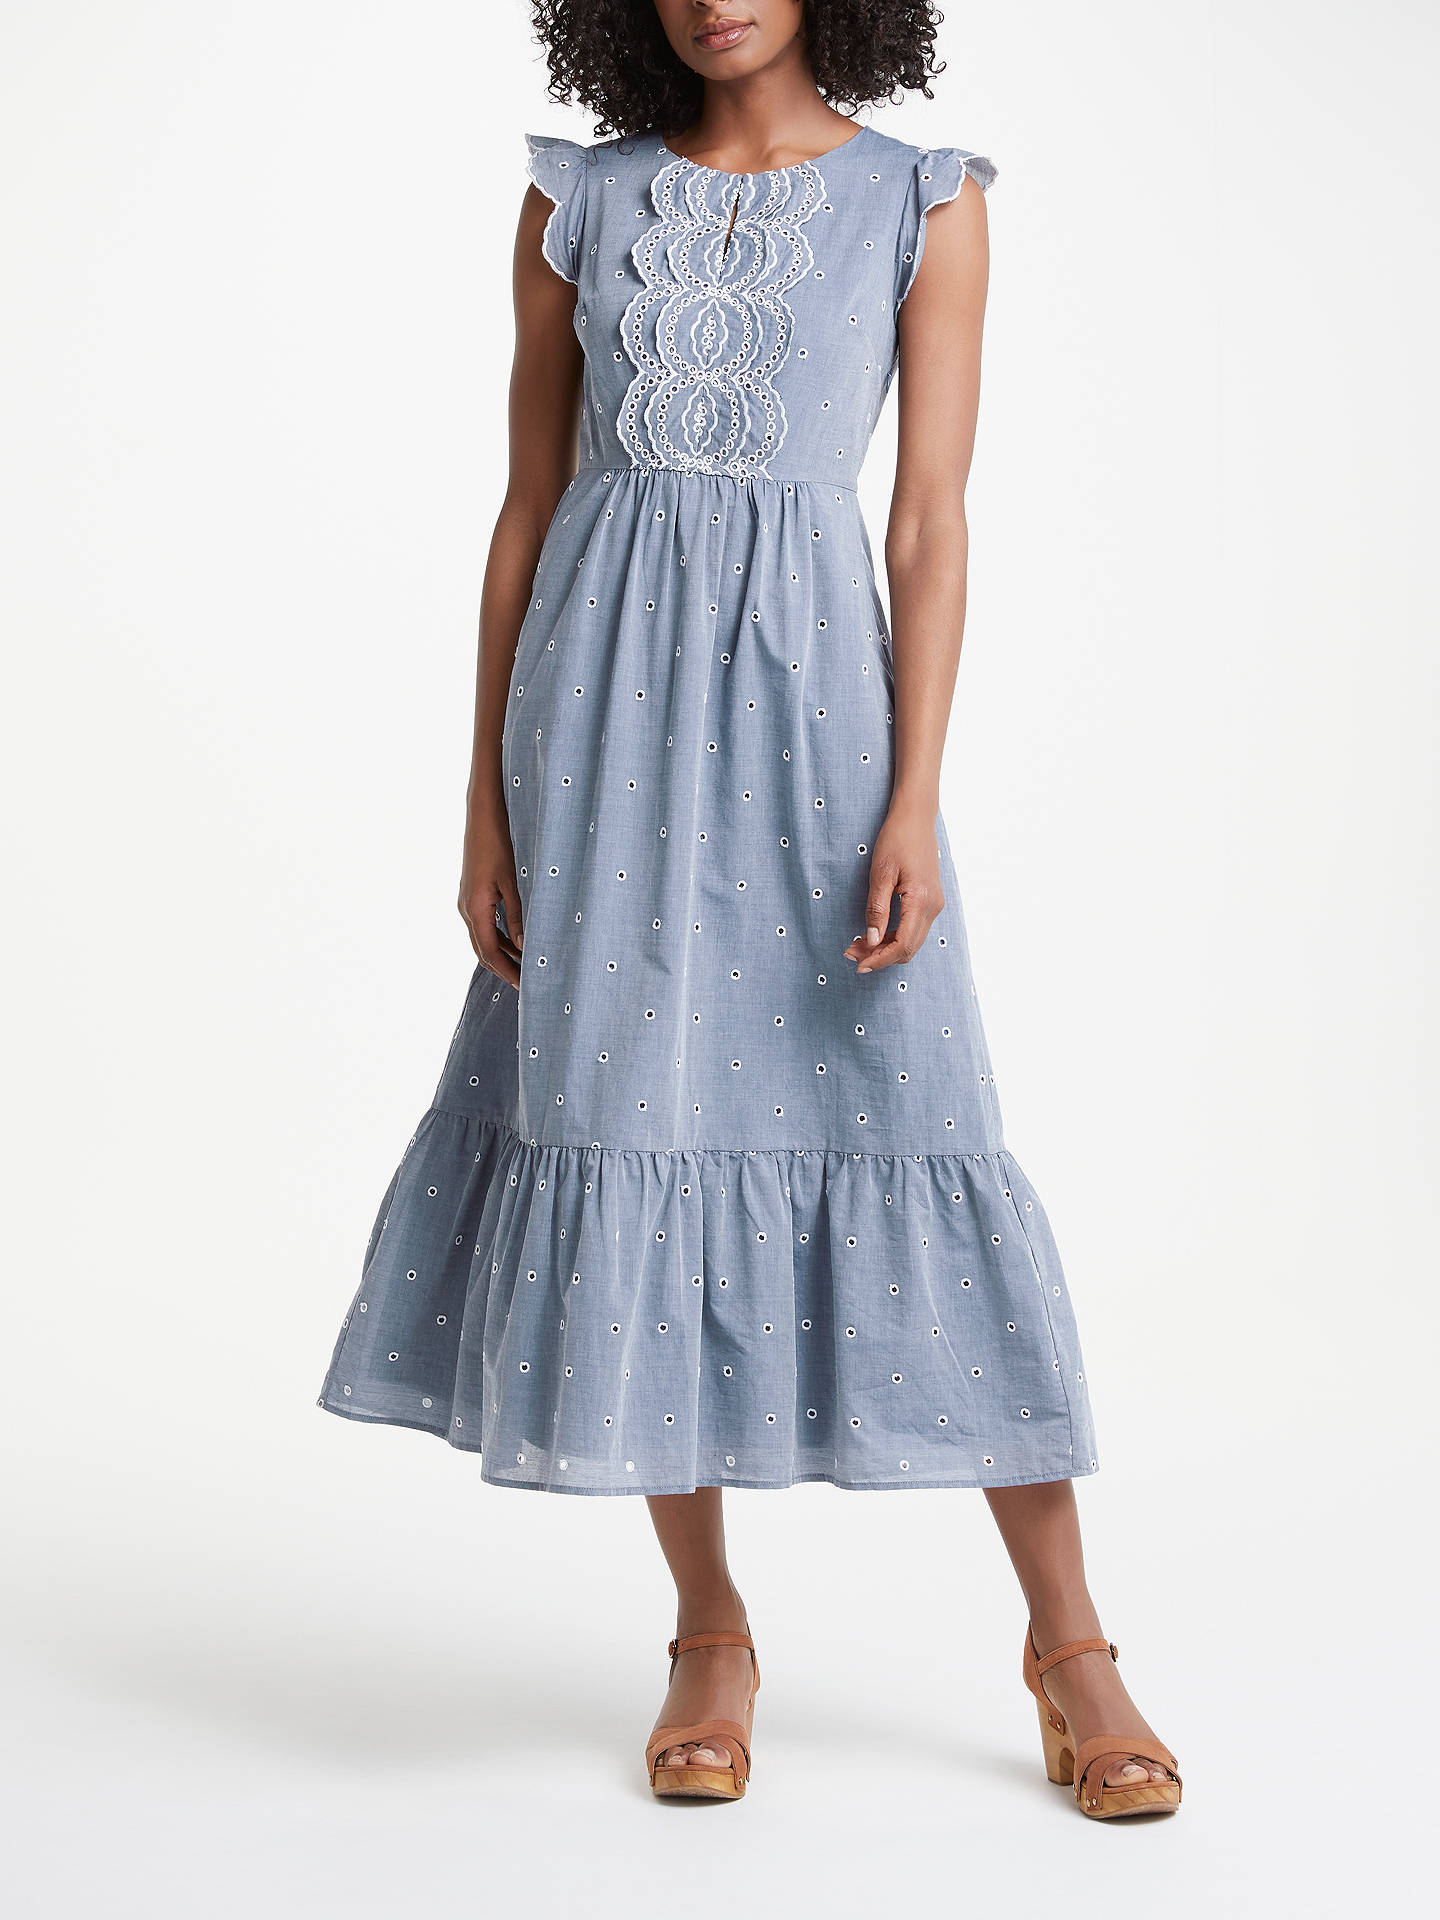 Buy Boden Lucinda Broderie Dress, Chambray/Ivory Embroidery, 8 Online at johnlewis.com